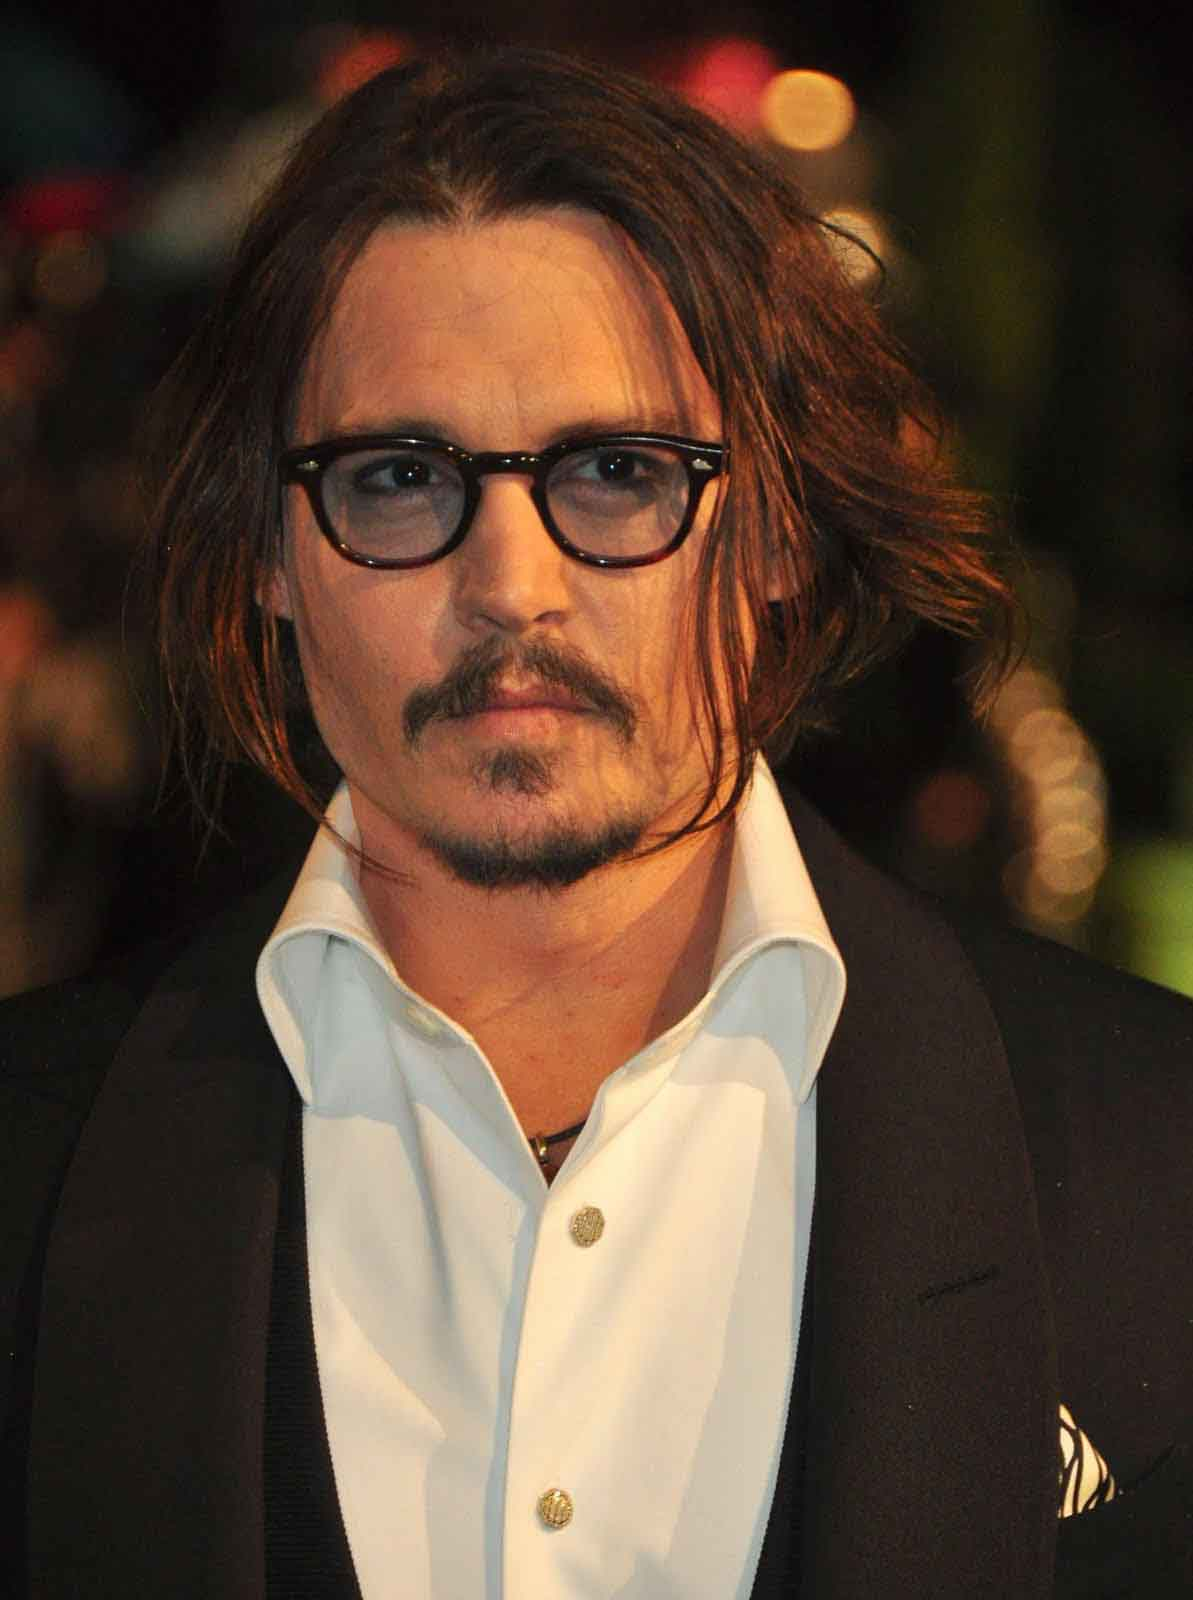 Pleasing Johnny Depp Hairstyle Always Cool Amp Awesome Livinghours Short Hairstyles For Black Women Fulllsitofus